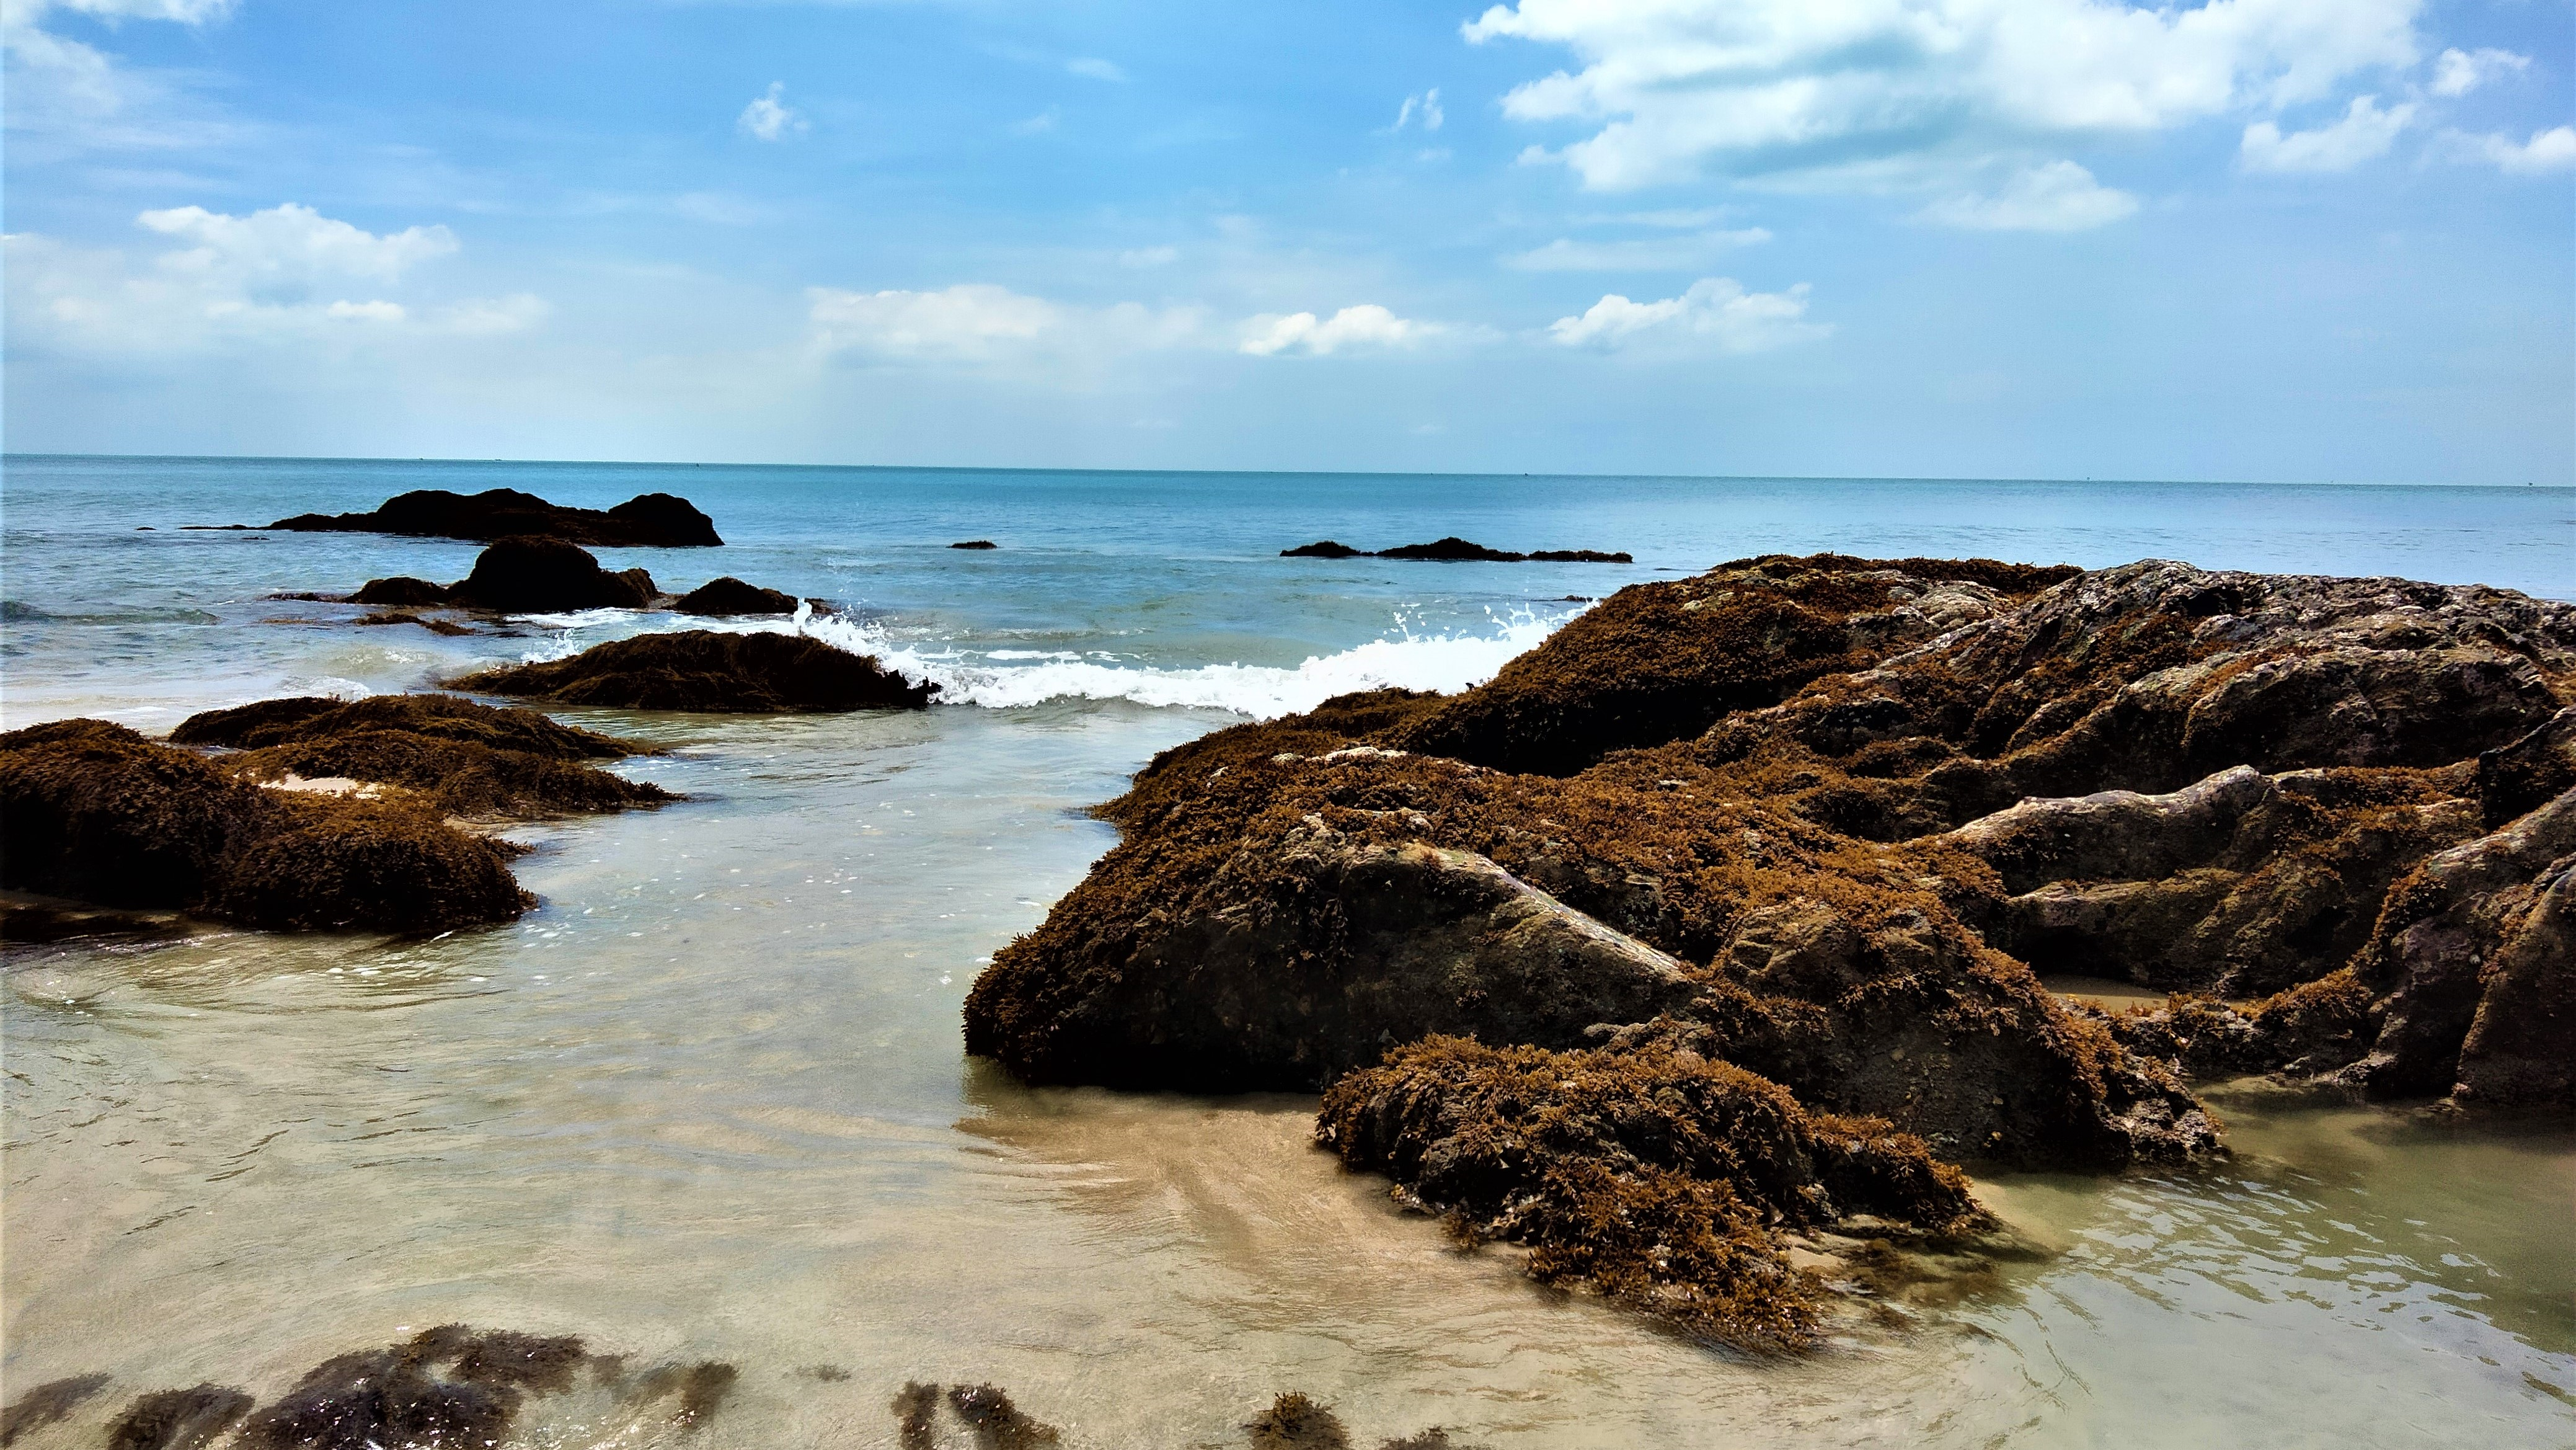 Batu Layar – Sun, Sea, Sand (and Rocks)